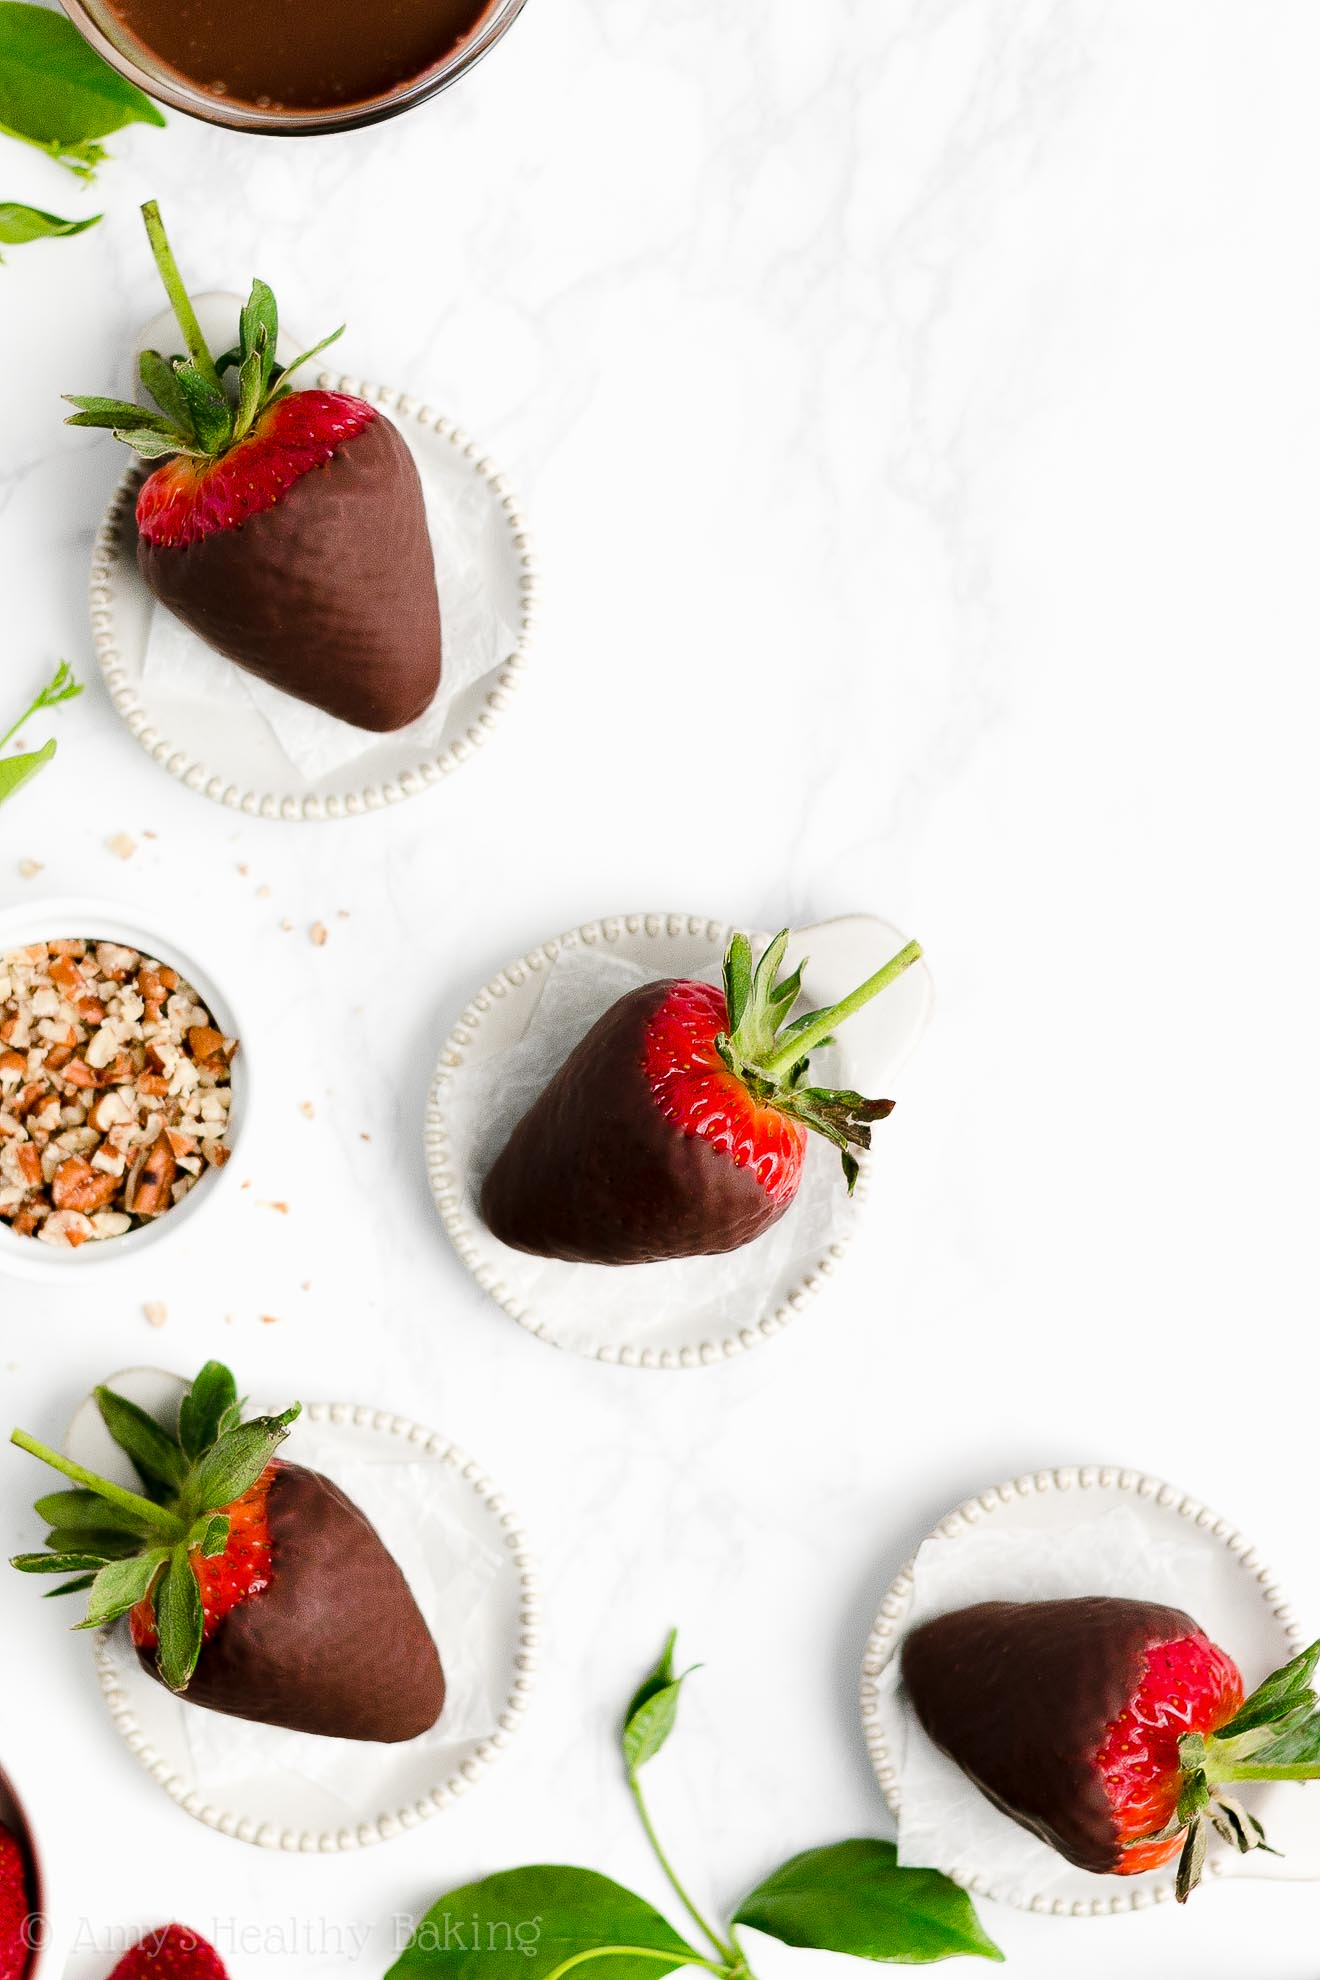 Perfect, BEST EVER Healthy Clean Eating Low Sugar Chocolate Covered Strawberries